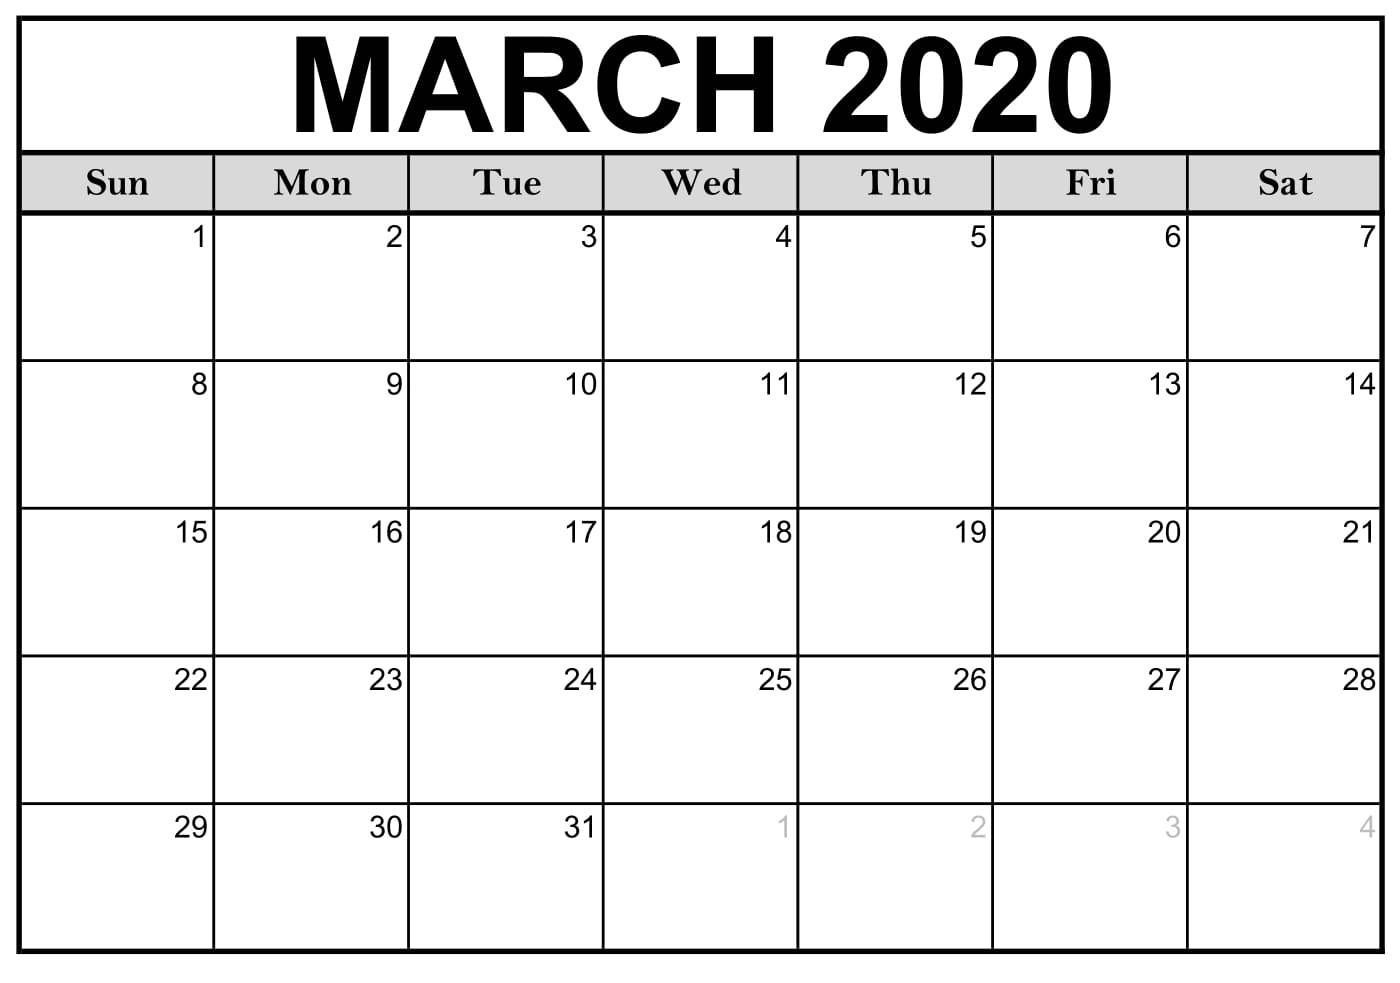 Calendar March 2020 Free Printable In 2020 | Calendar Printables